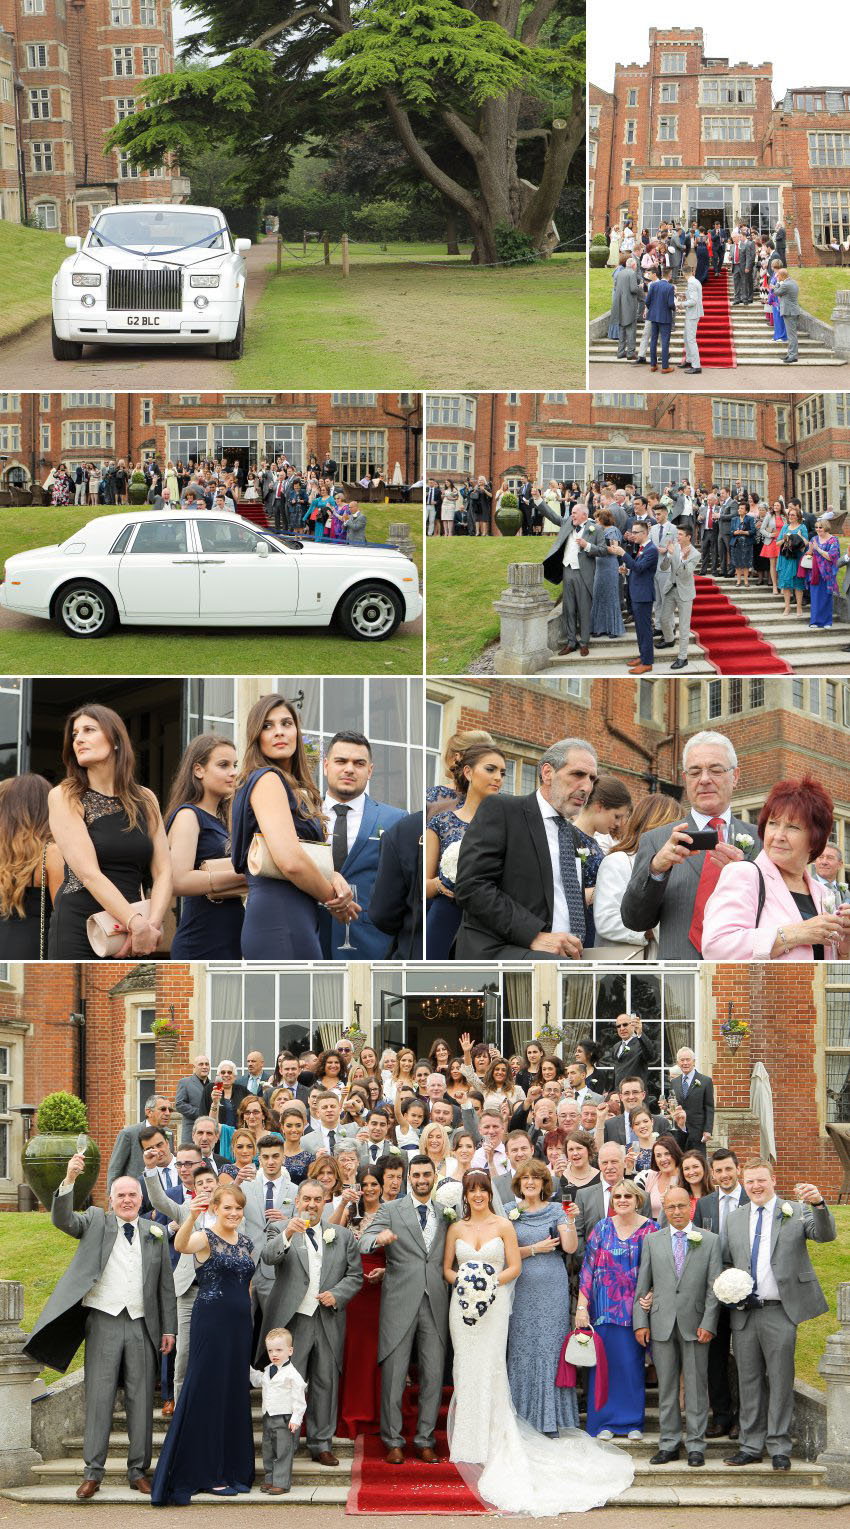 10 Wedding at Selsdon Estate, South Croydon